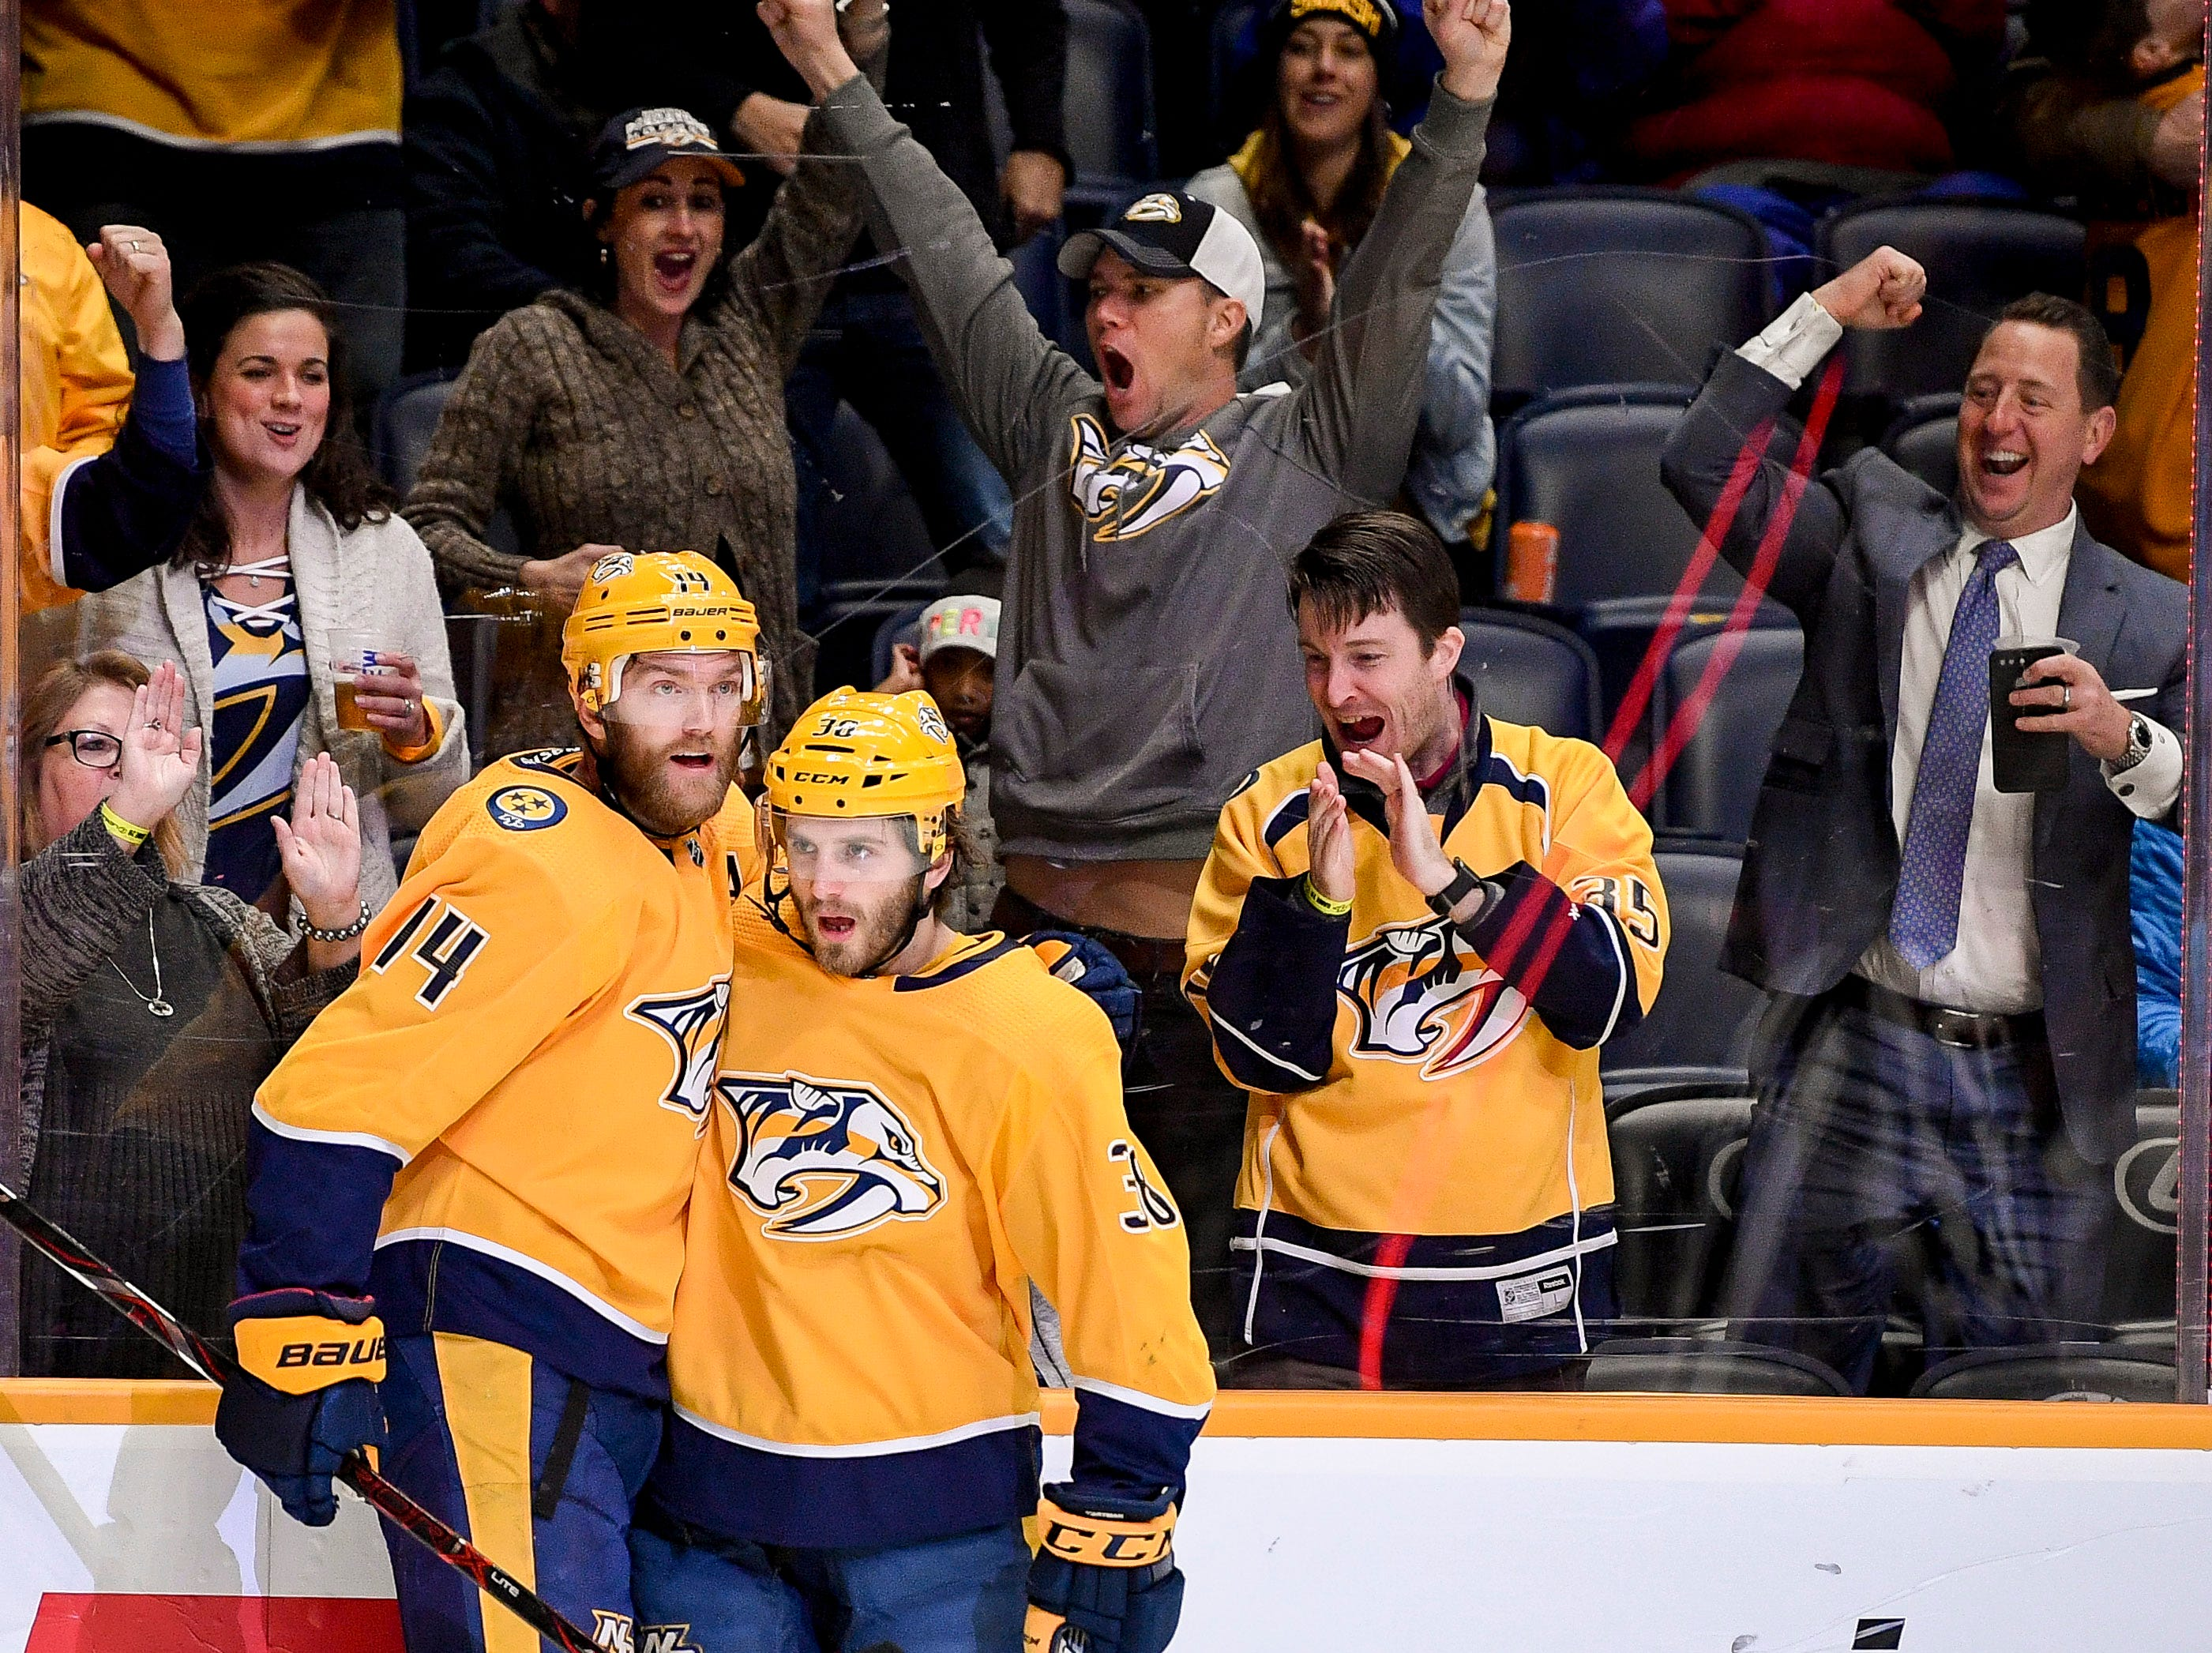 Nashville Predators right wing Ryan Hartman (38) celebrates his goal against the Vancouver Canucks with defenseman Mattias Ekholm (14) during the first period at Bridgestone Arena in Nashville, Tenn., Thursday, Dec. 13, 2018.